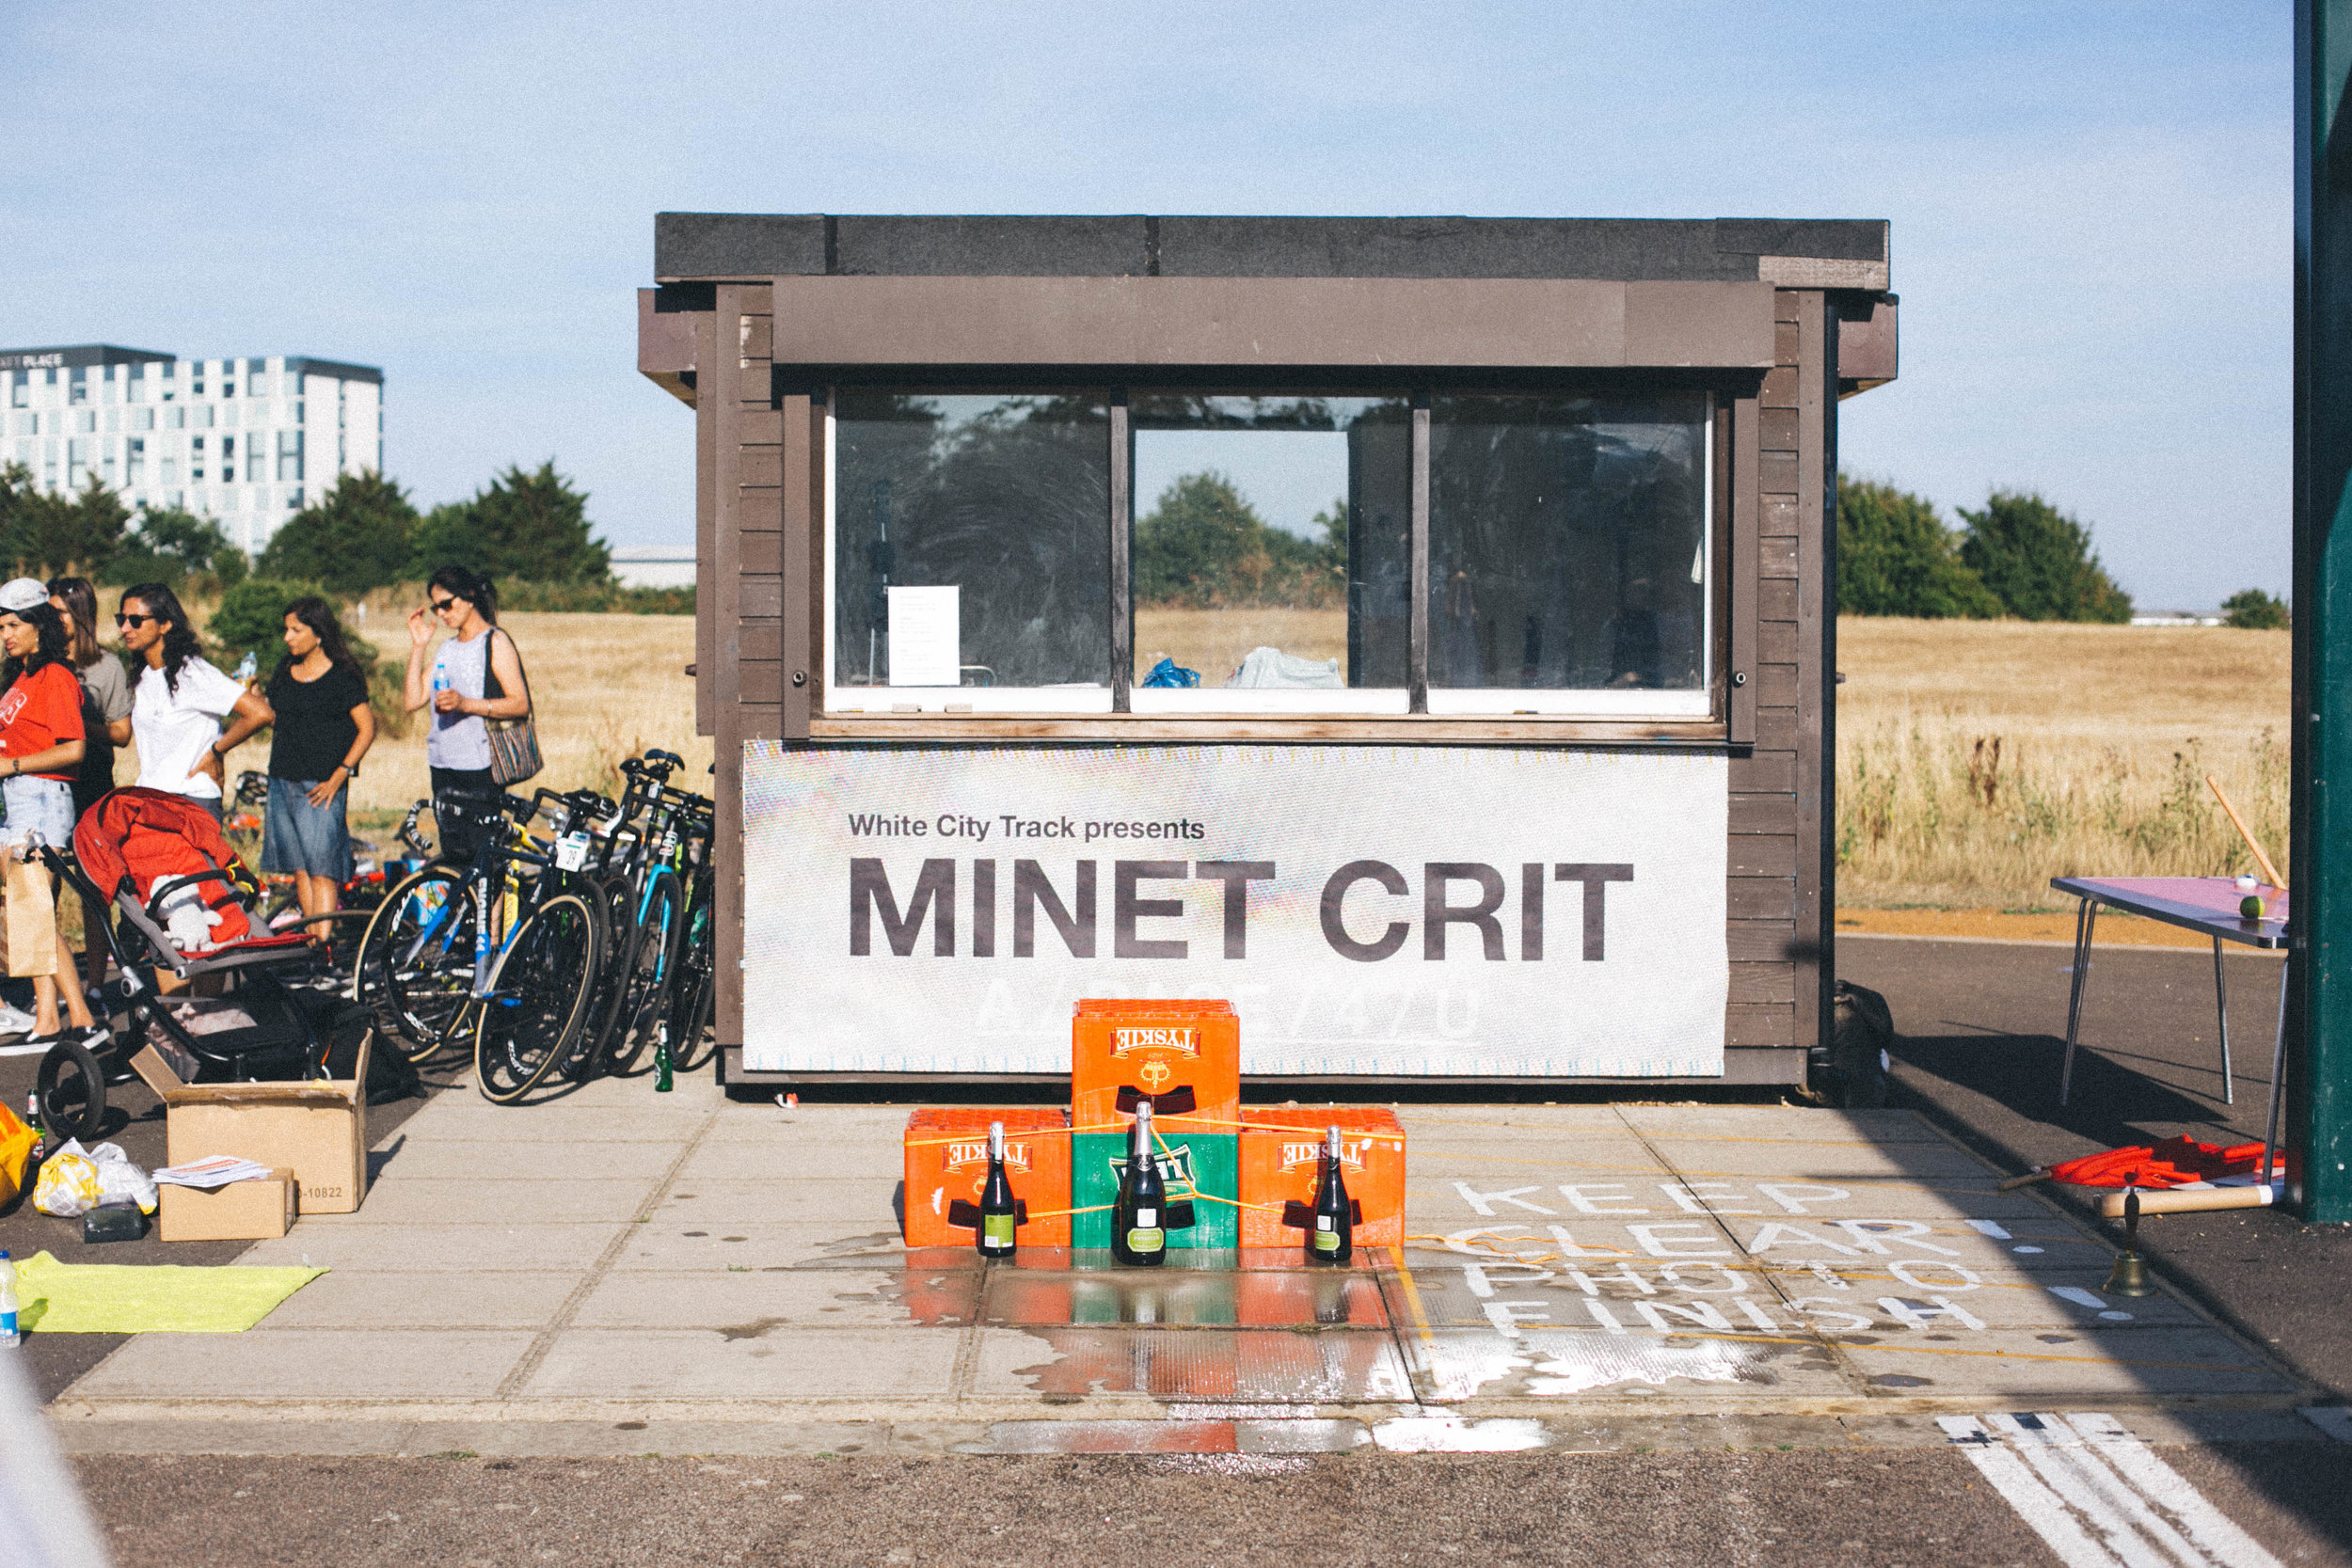 The podium Minet Crit